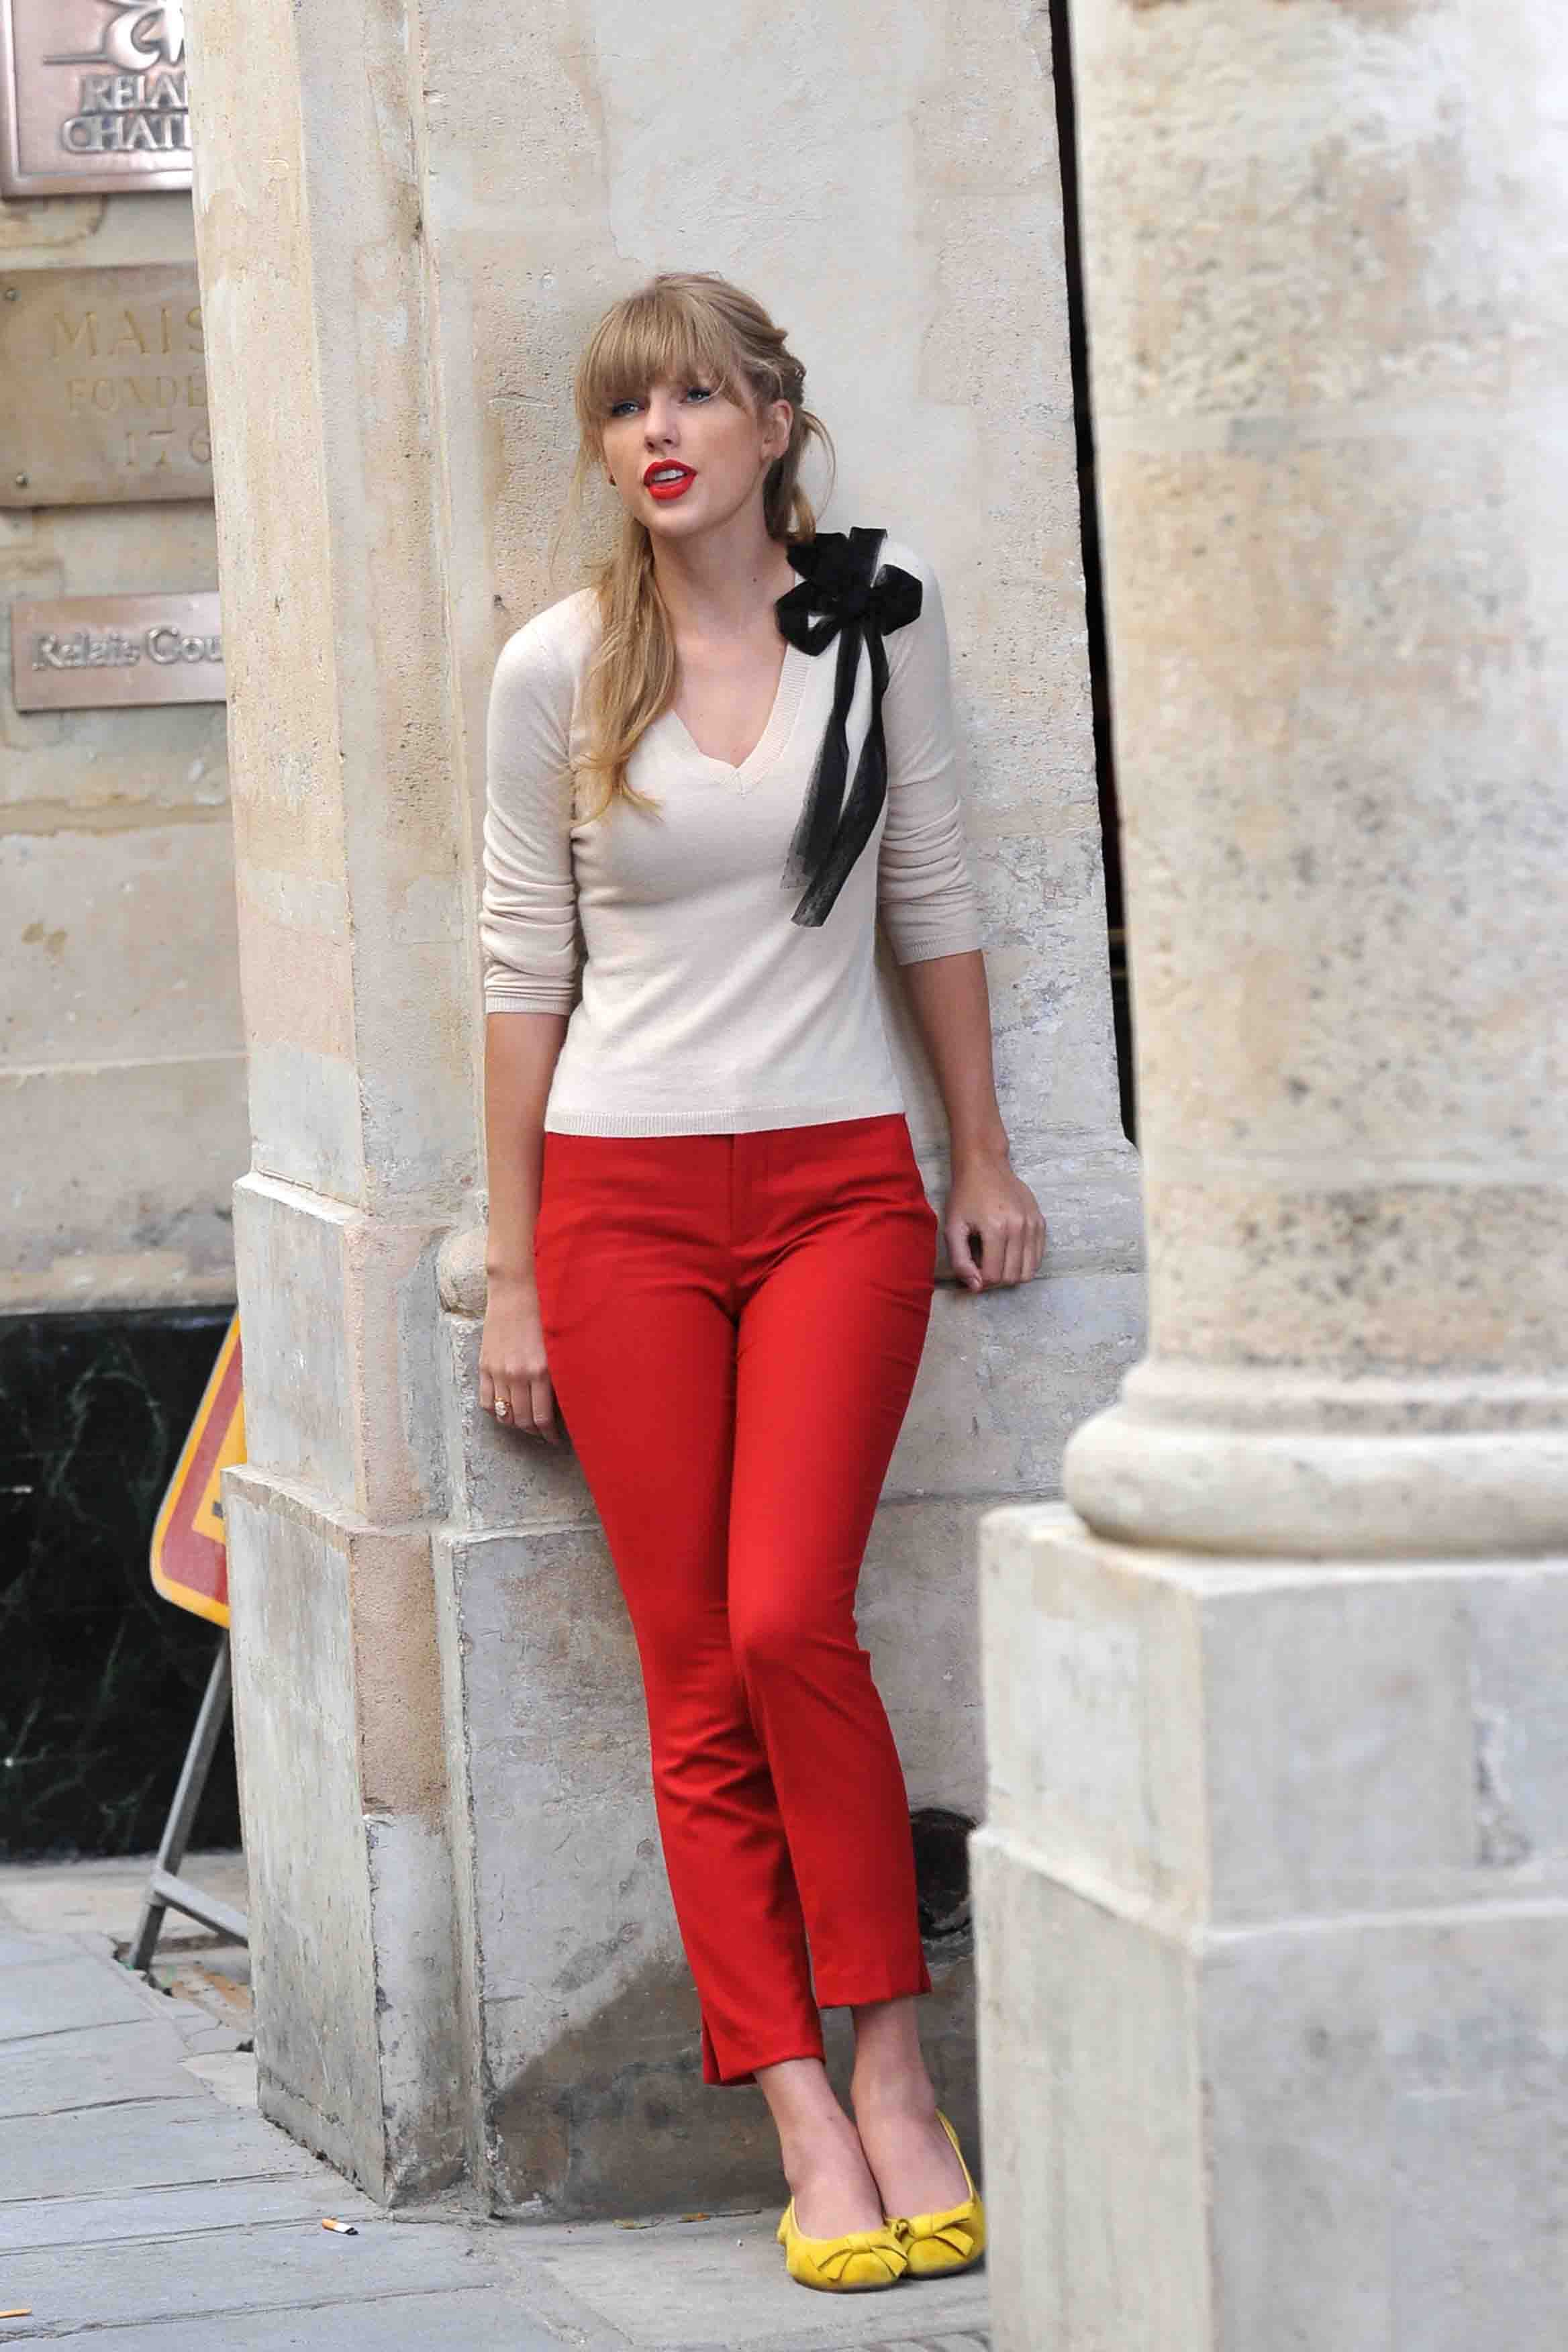 Taylor Swift 39 S Sweater With Bow Red Cropped Pants And Yellow Flats On Begin Again Music Video